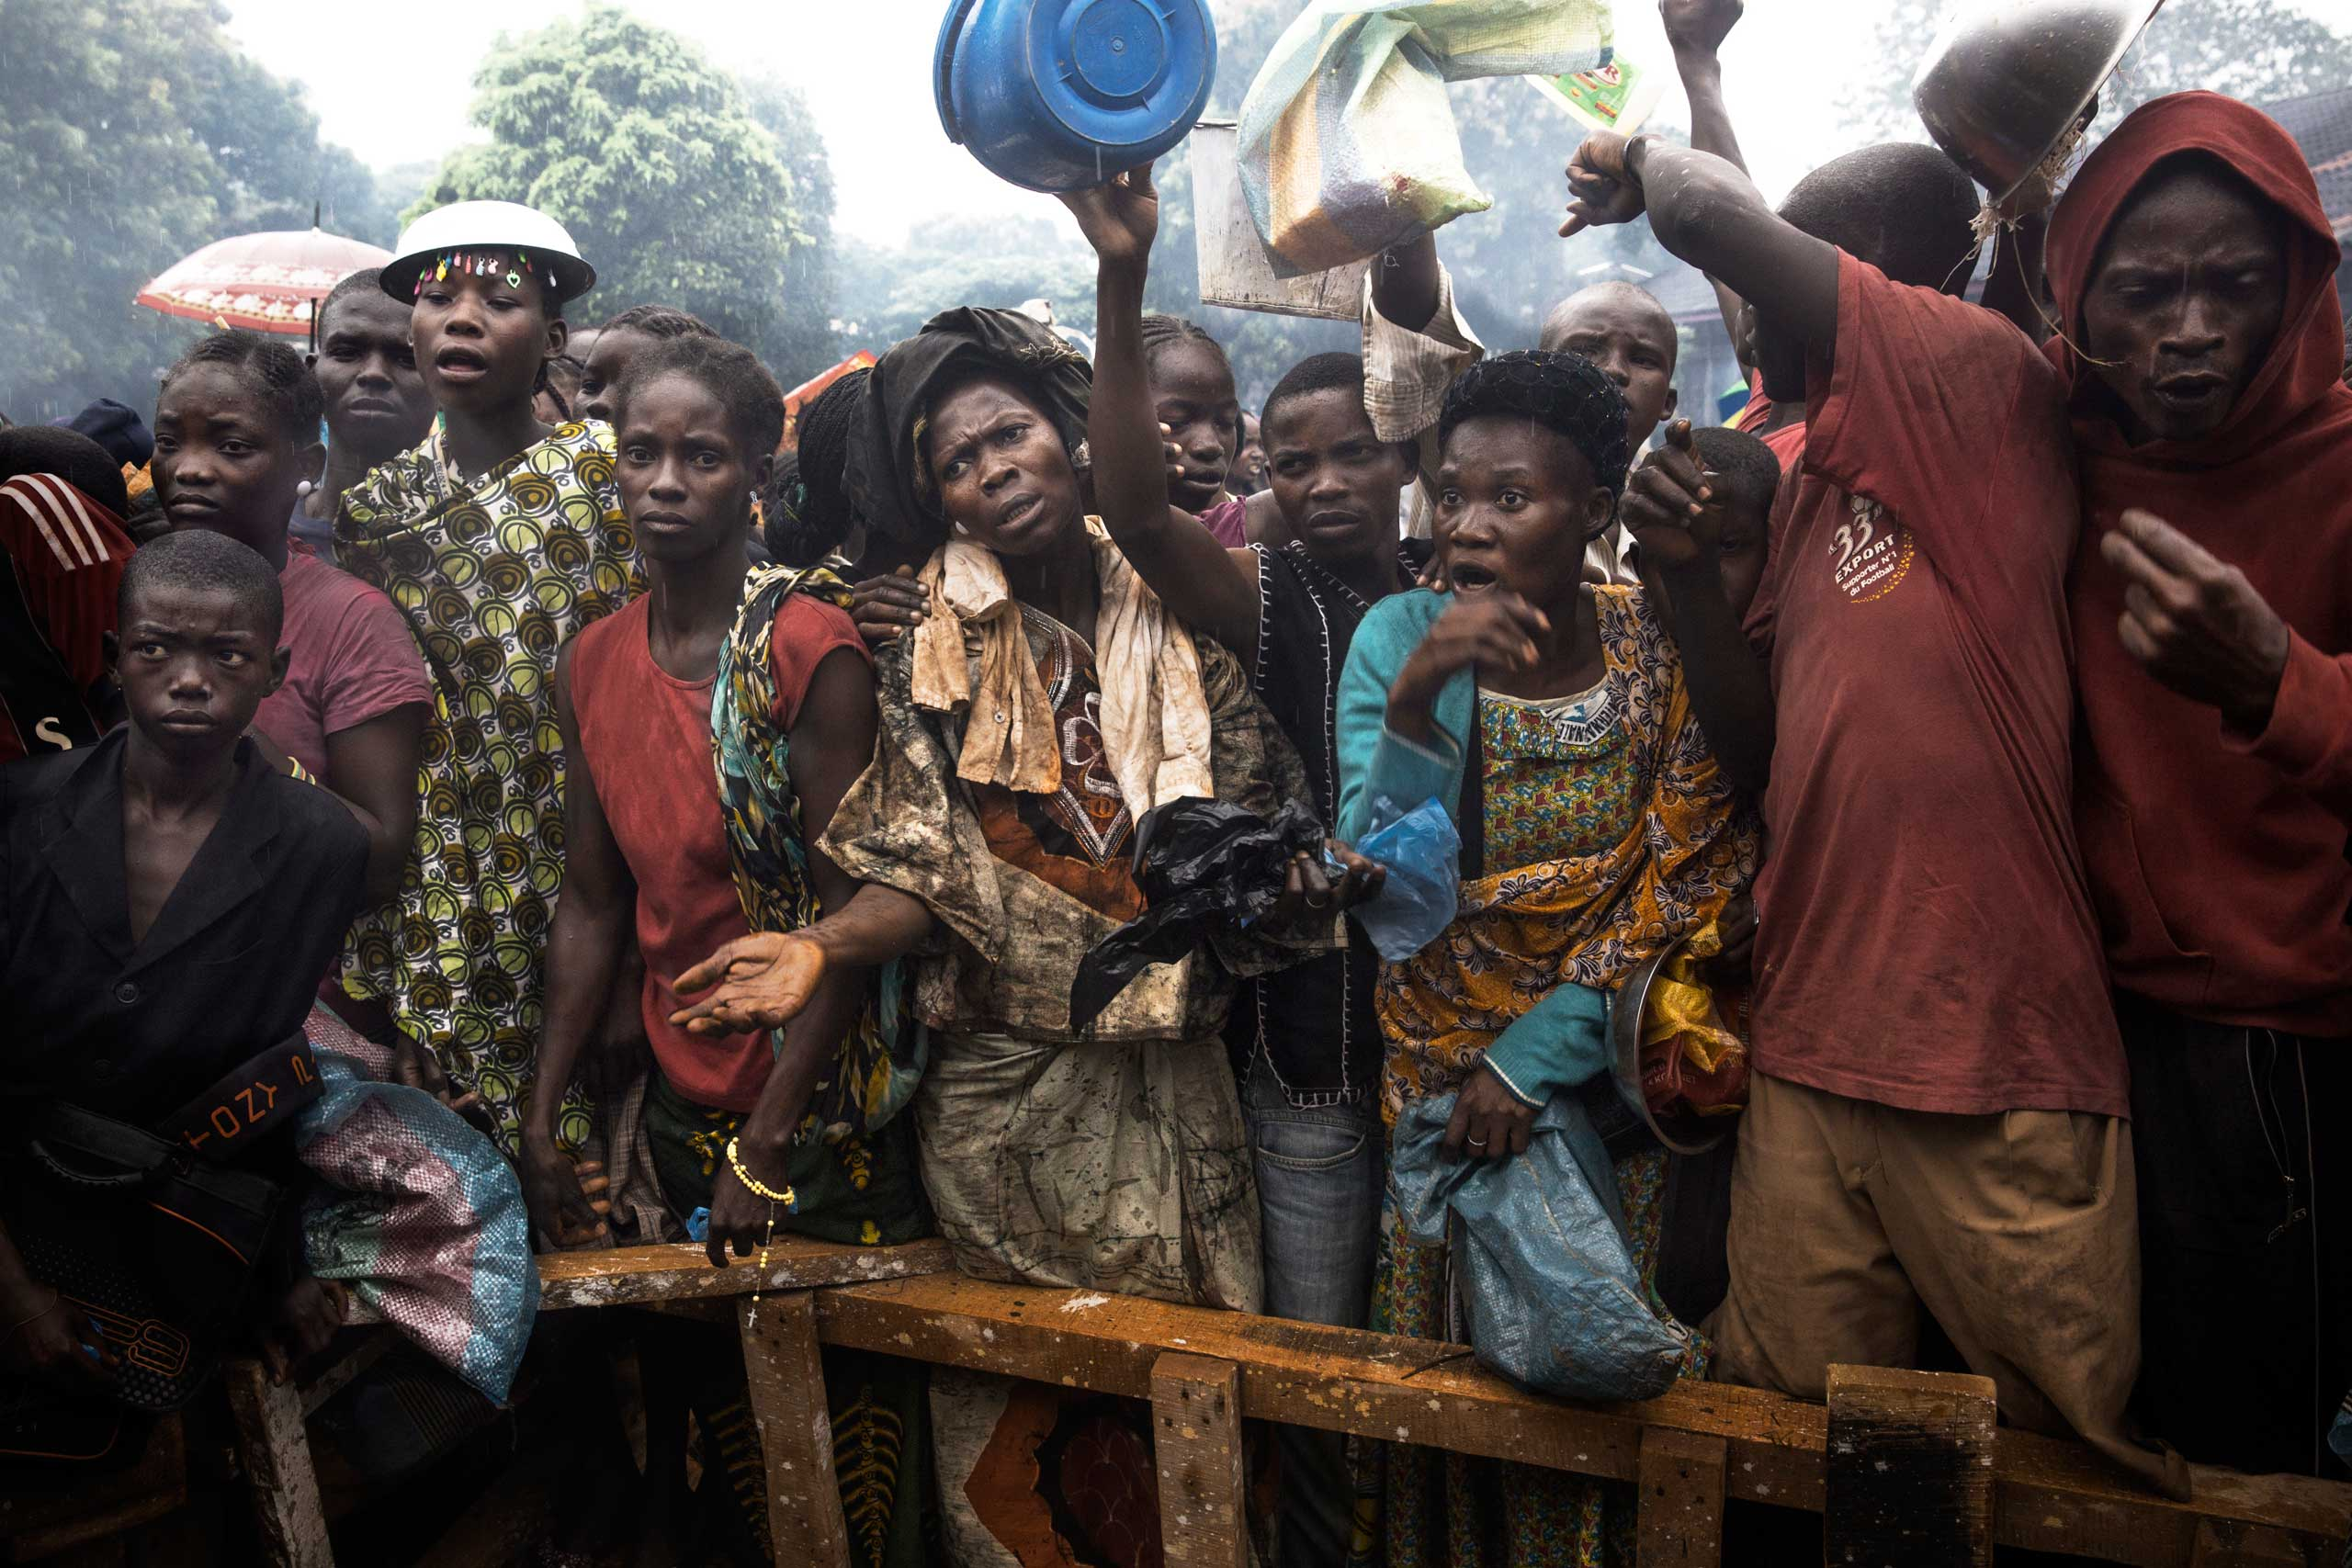 Internally displaced persons wait in line for food. Bangui, Central African Republic. Dec. 9, 2013.